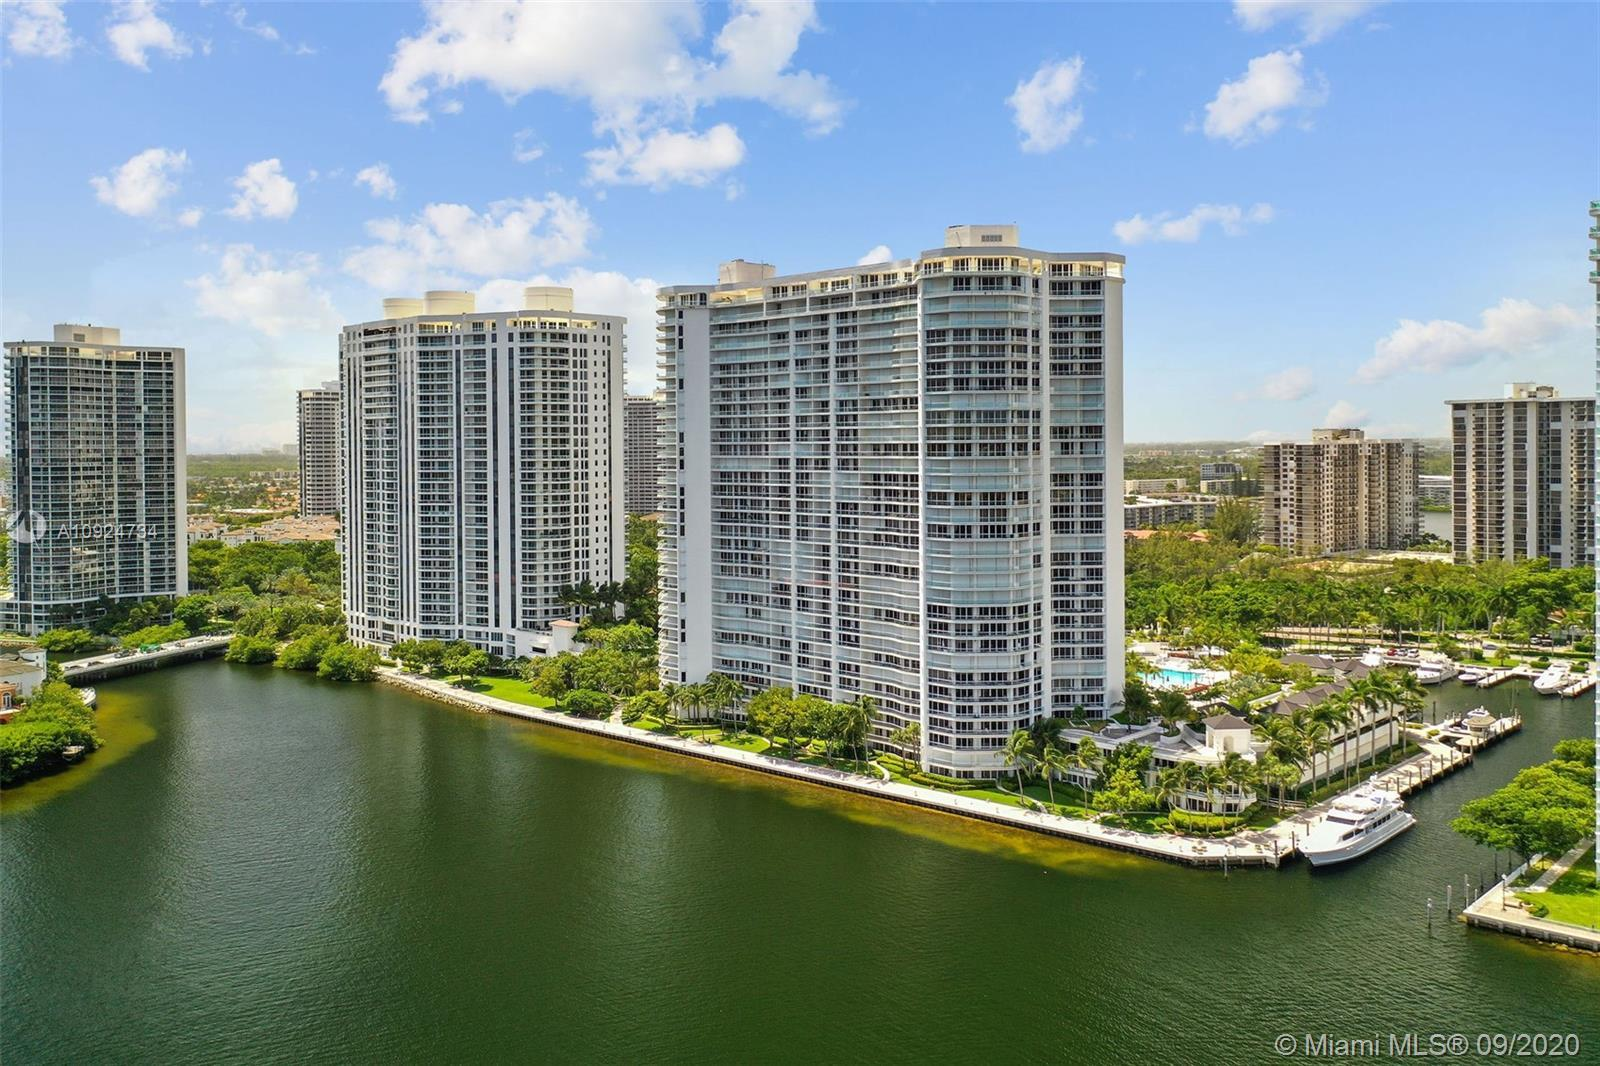 MAGNIFICENT APARTMENT IN THE LUXURIOUS WILLIAMS ISLAND. 2 BEDROOMS 2 BATHROOMS. THIS AMAZING RESIDEN